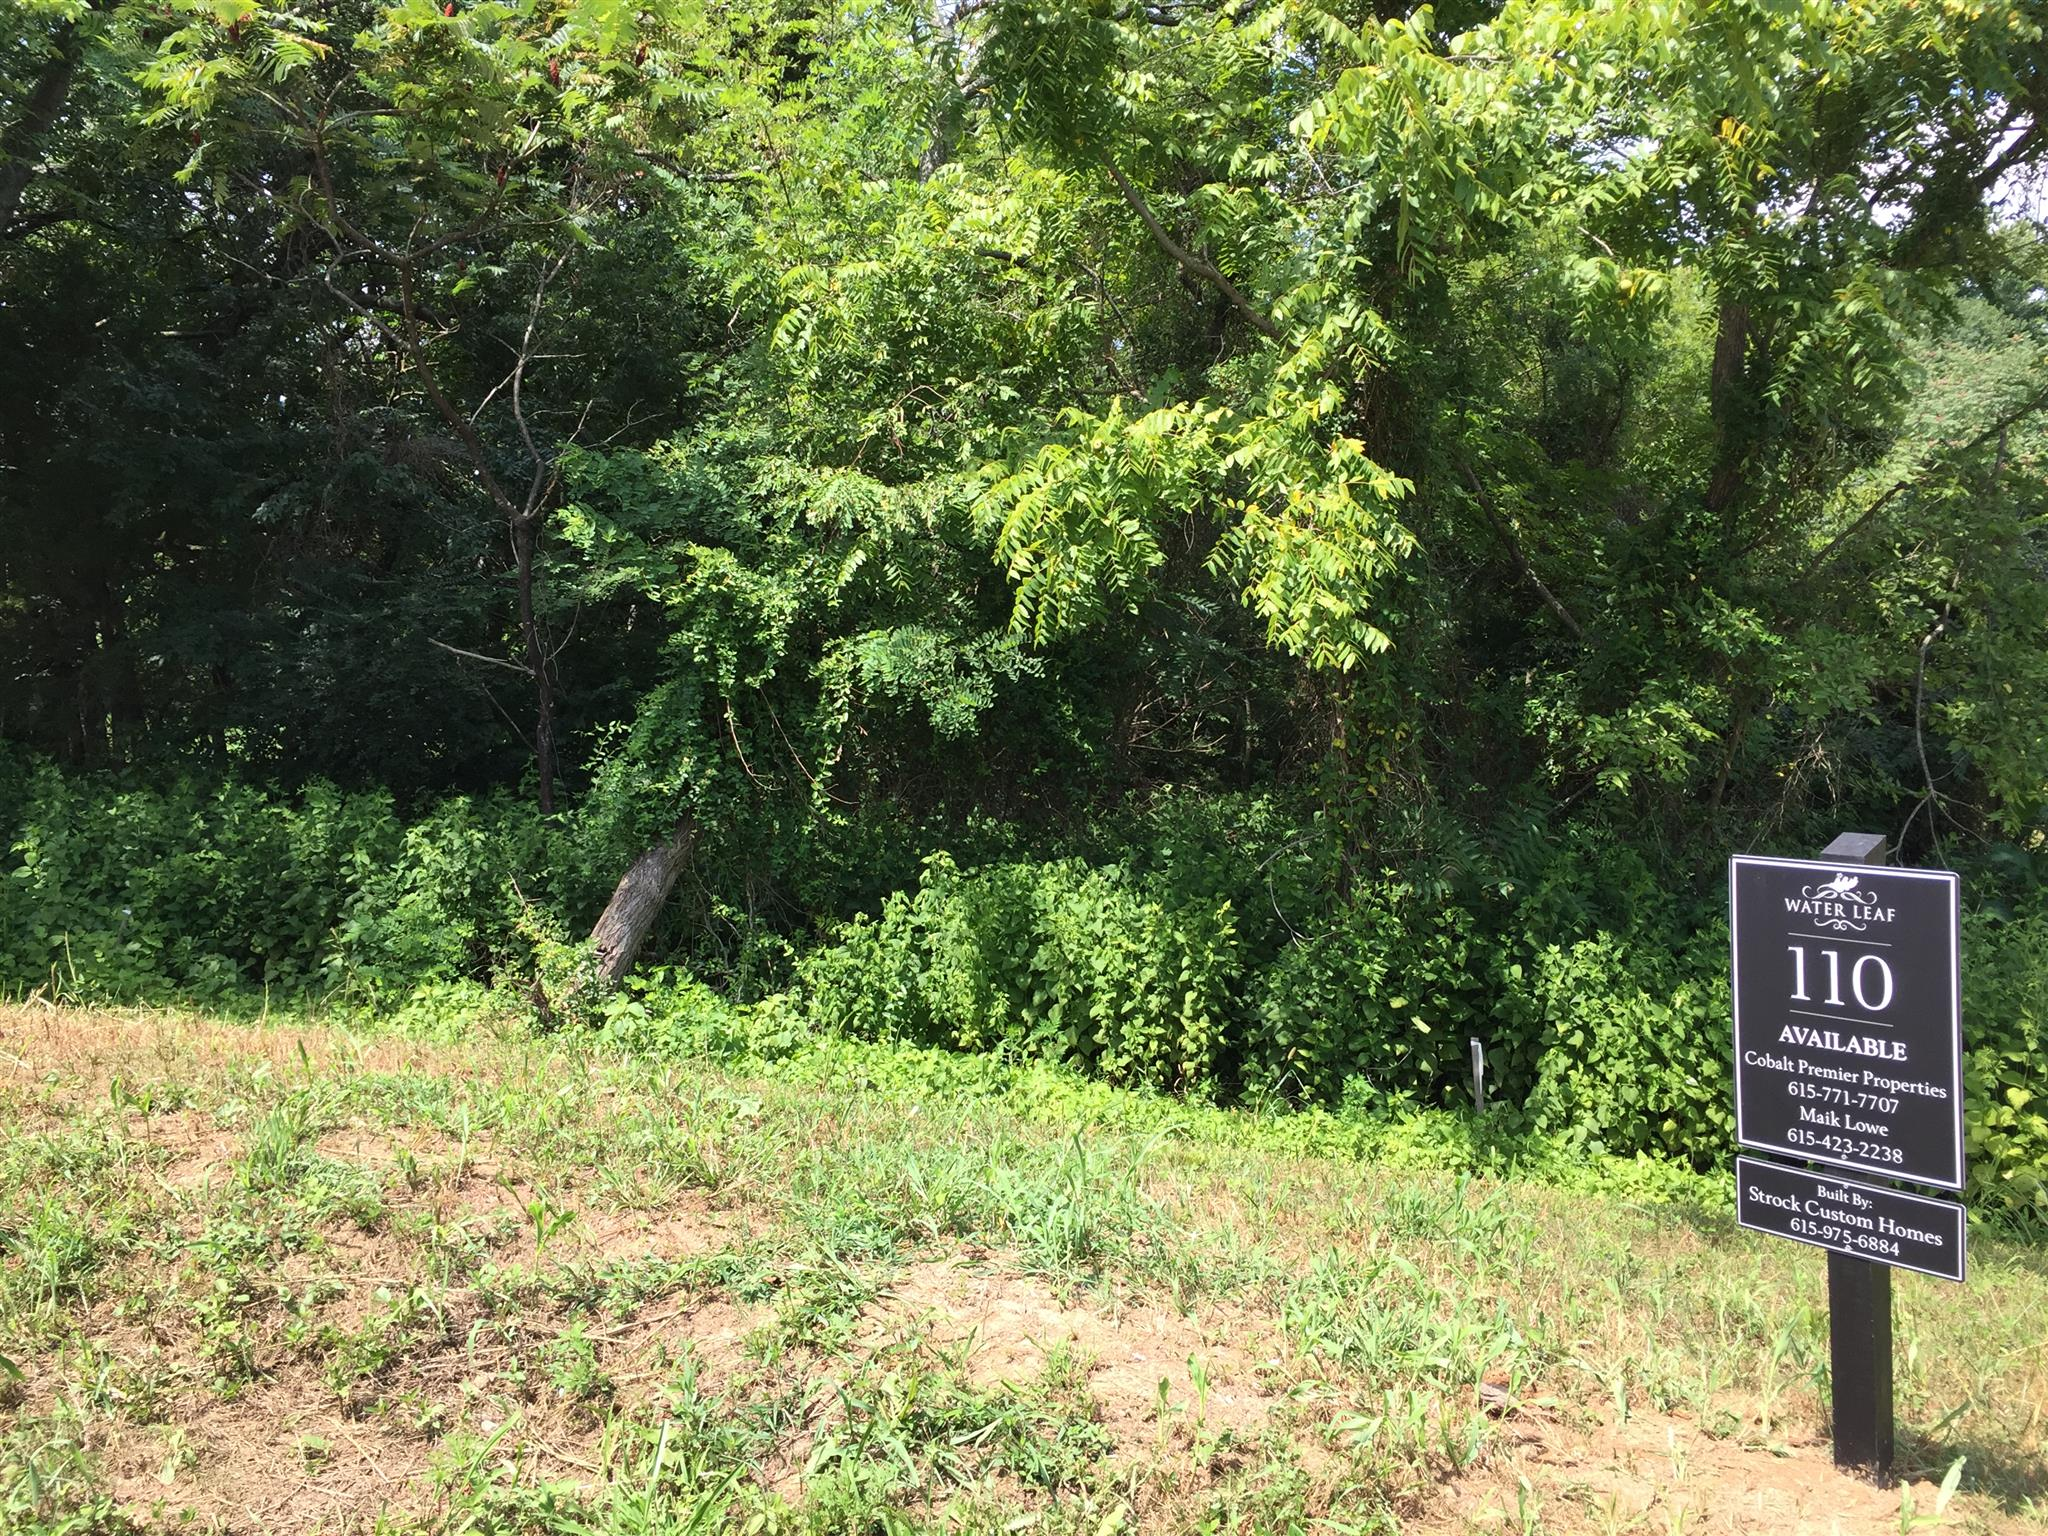 Beautiful treed lot at the end of the road  with large building envelope.  Backs to a tree line and creek,  Water Leaf off Gosey HIll Road will have 24 total homes. 4 bedroom perc site,  Builder is Strock Custom Homes.  Build your dream home.